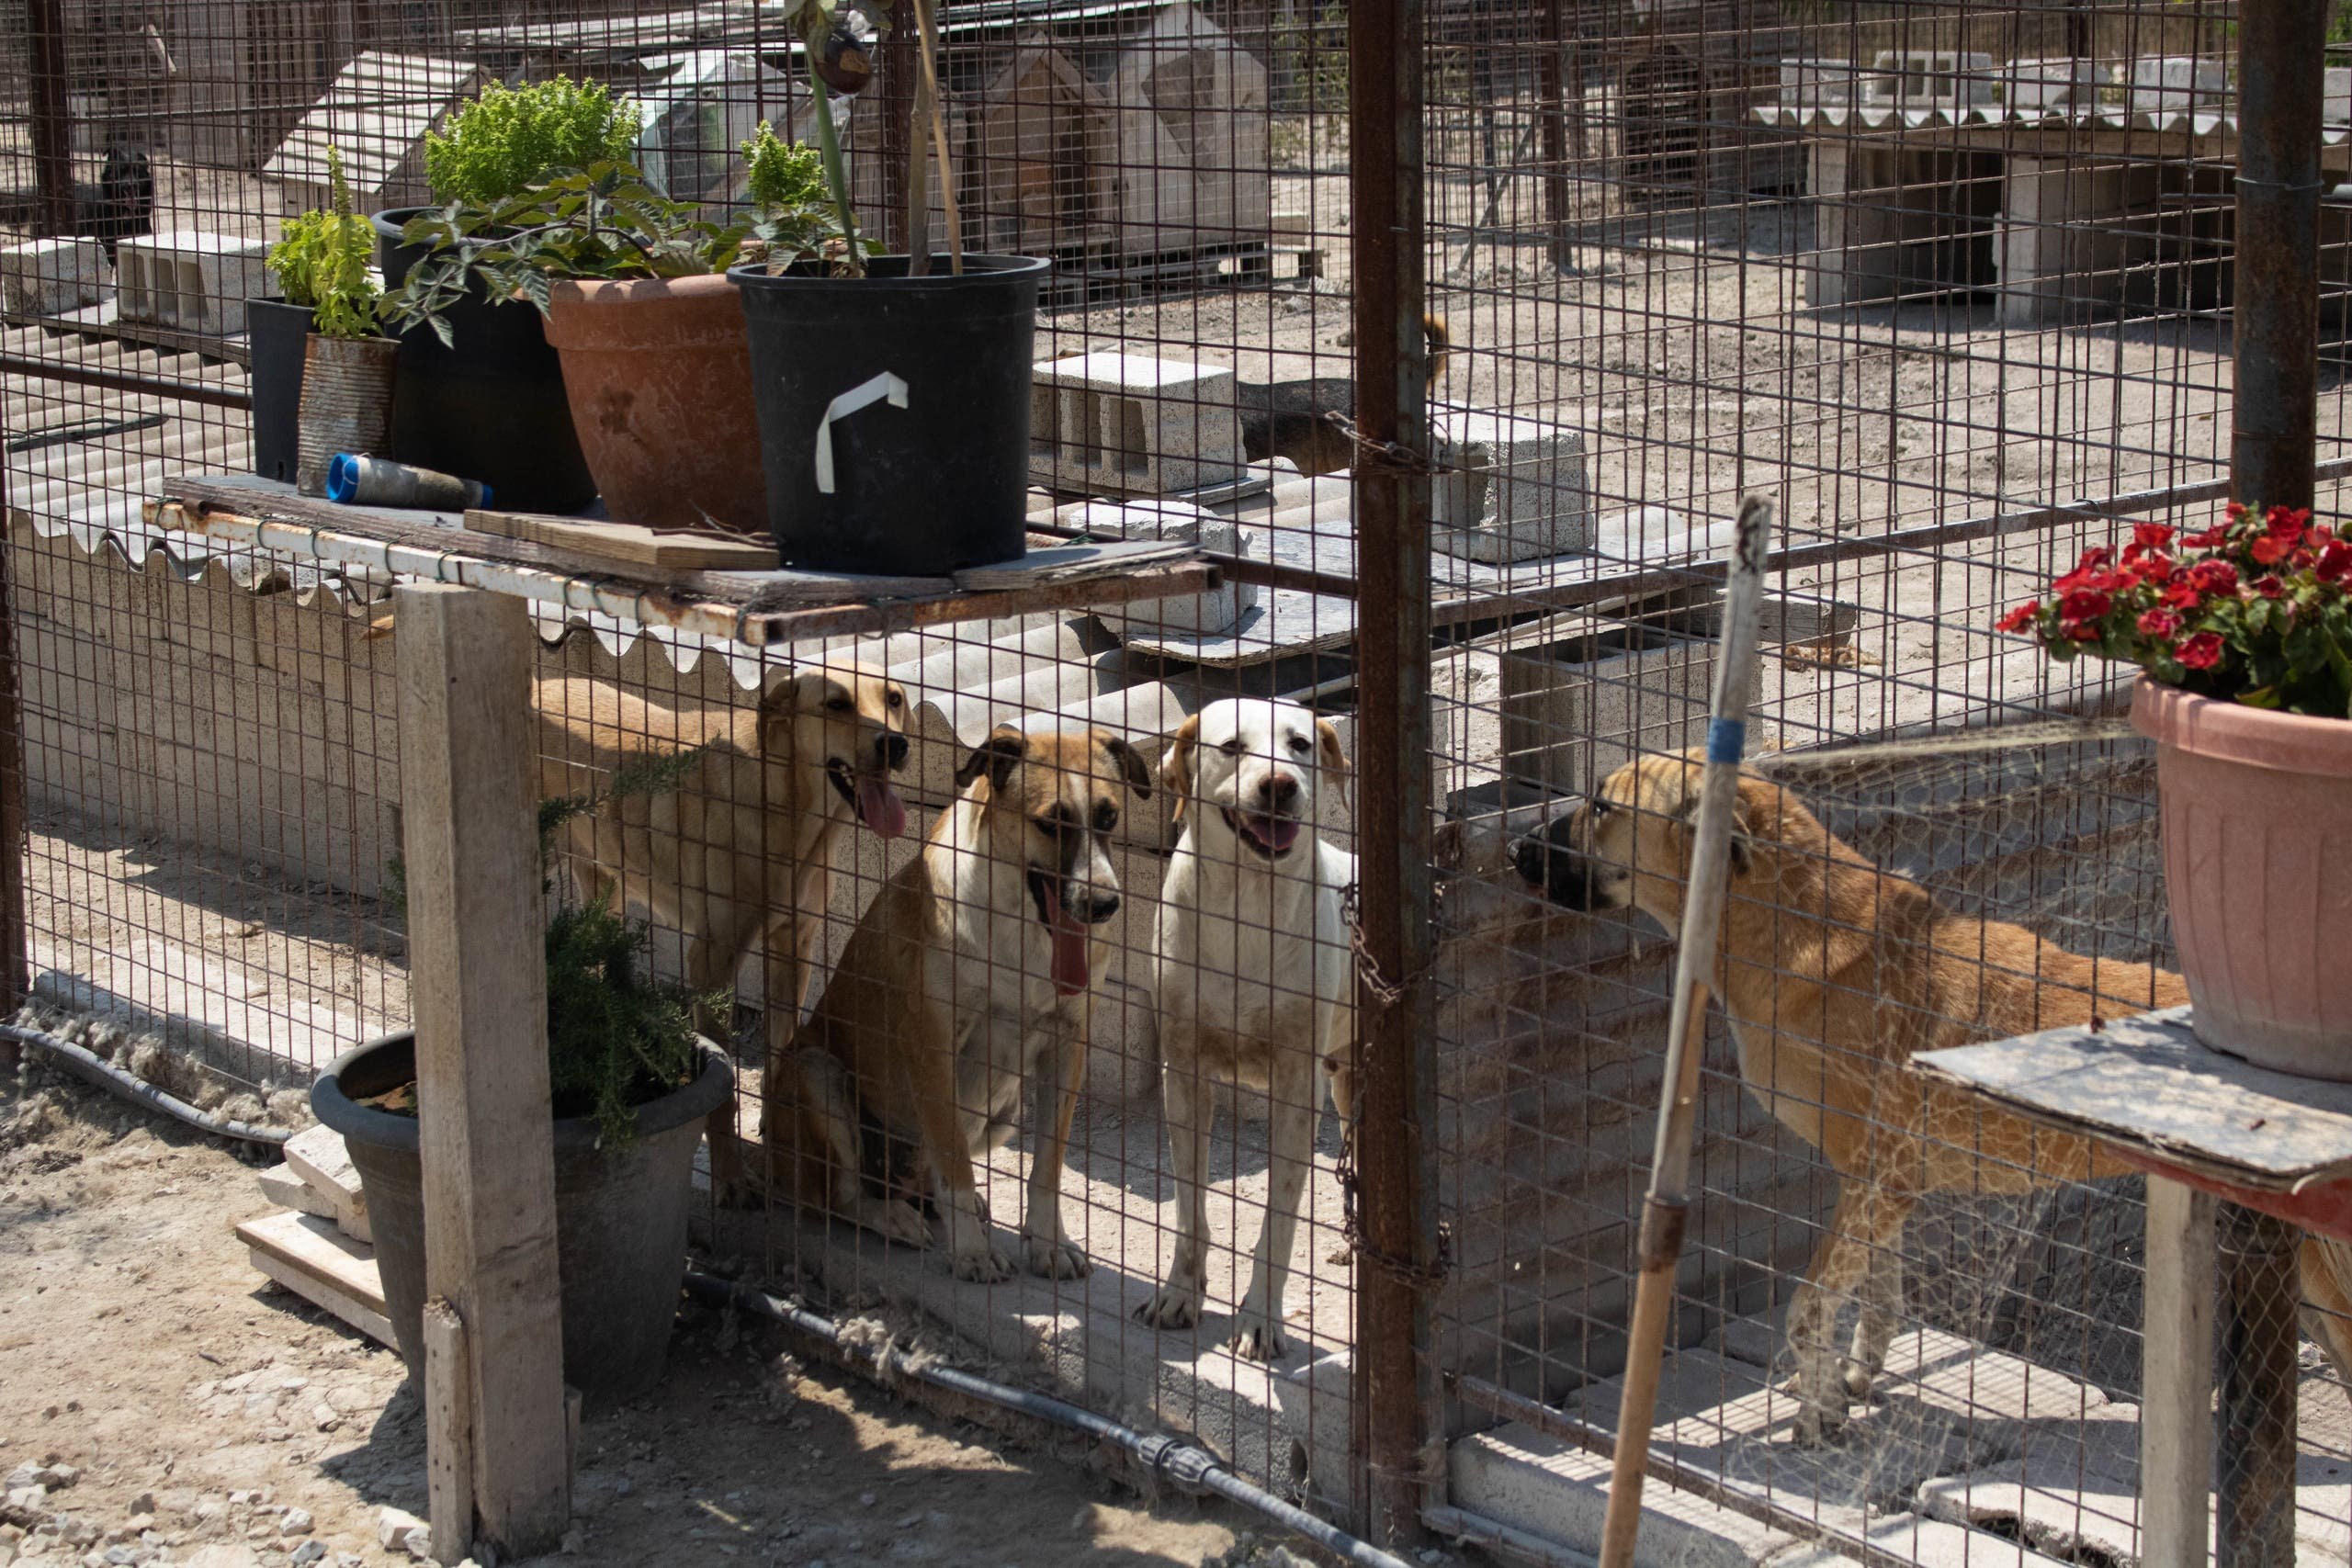 Should things continue to get worse, pet shelters already running at capacity will need to start turning away animals. (Image: Nicholas Frakes)